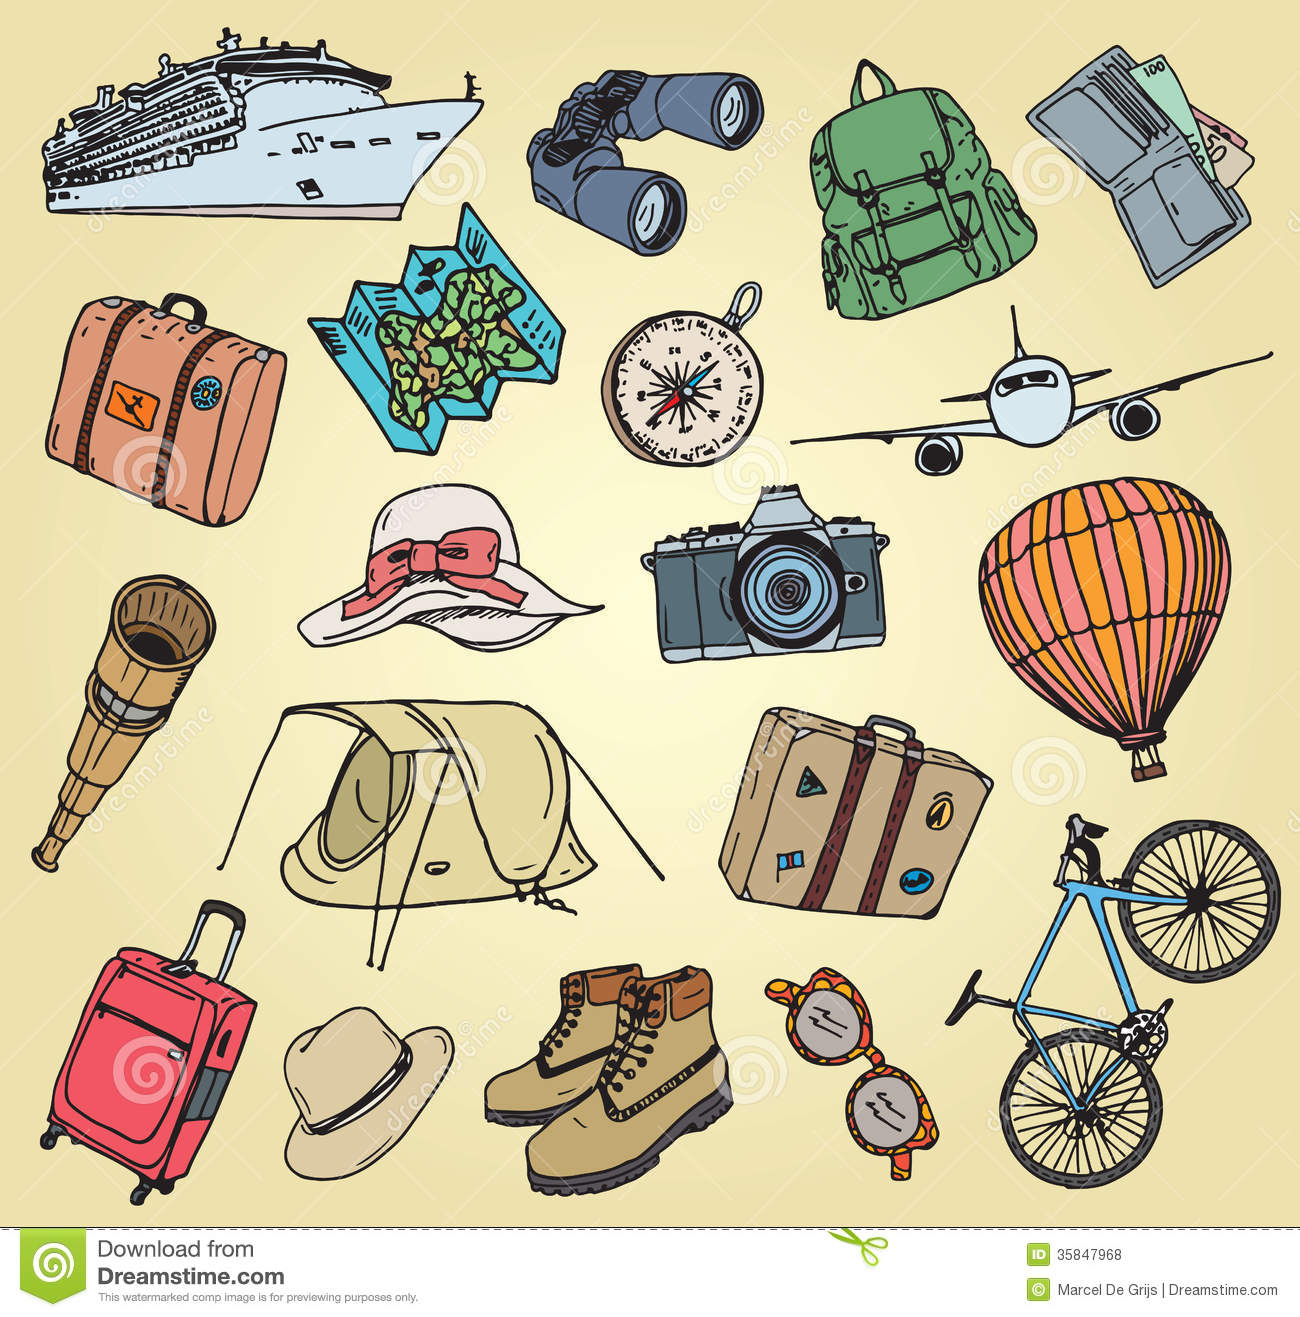 Holliday Doodle Items Royalty Free Stock Photos - Image: 35847968